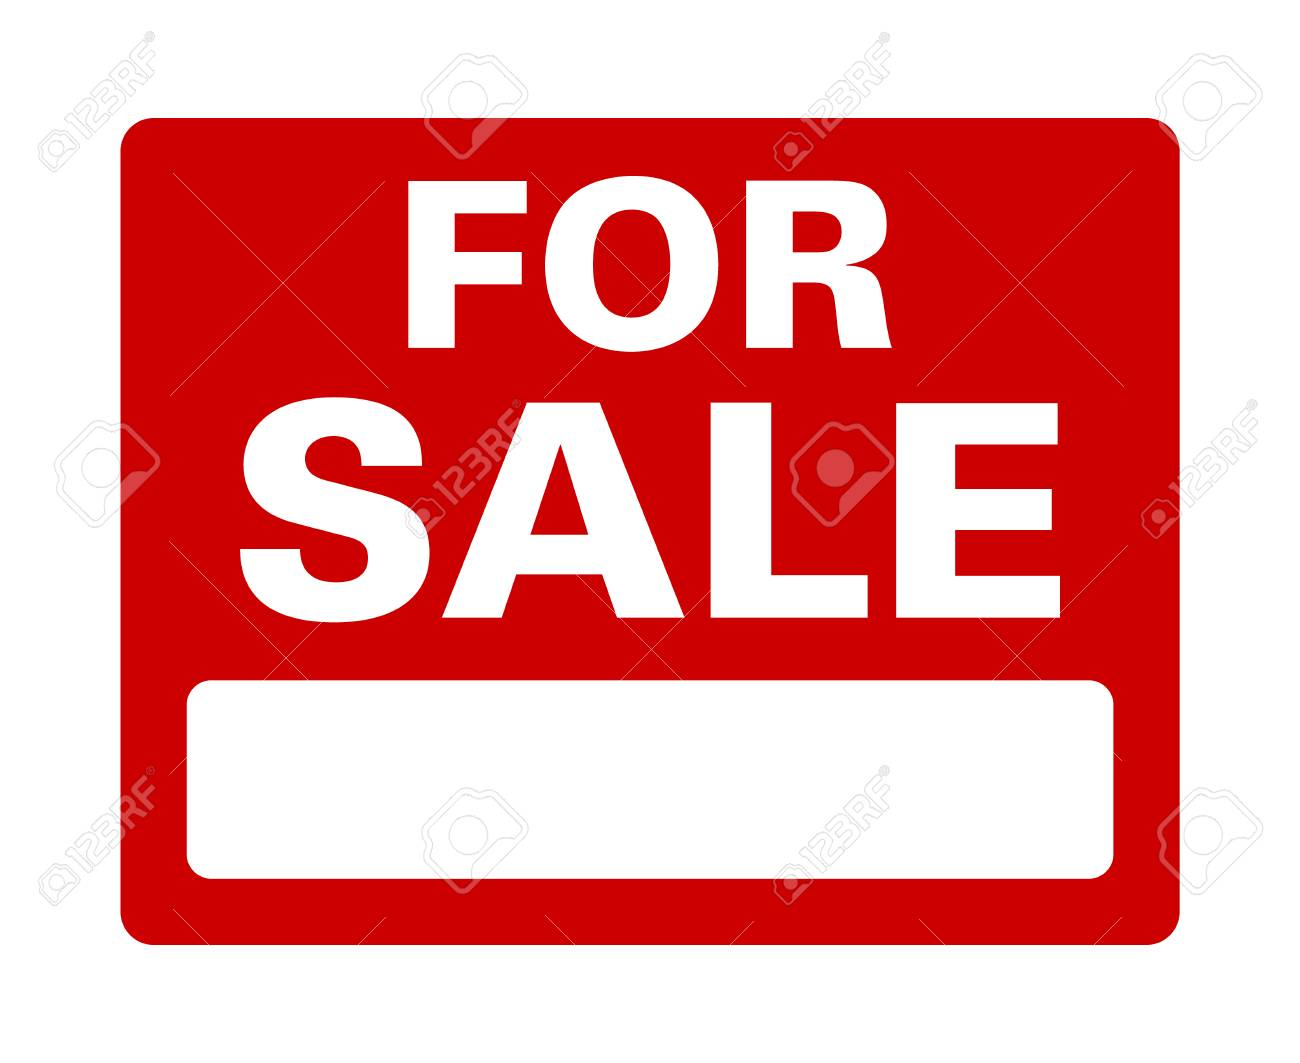 photograph about For Sale Sign Printable titled Pink for sale signal with black Room flat vector indication for print